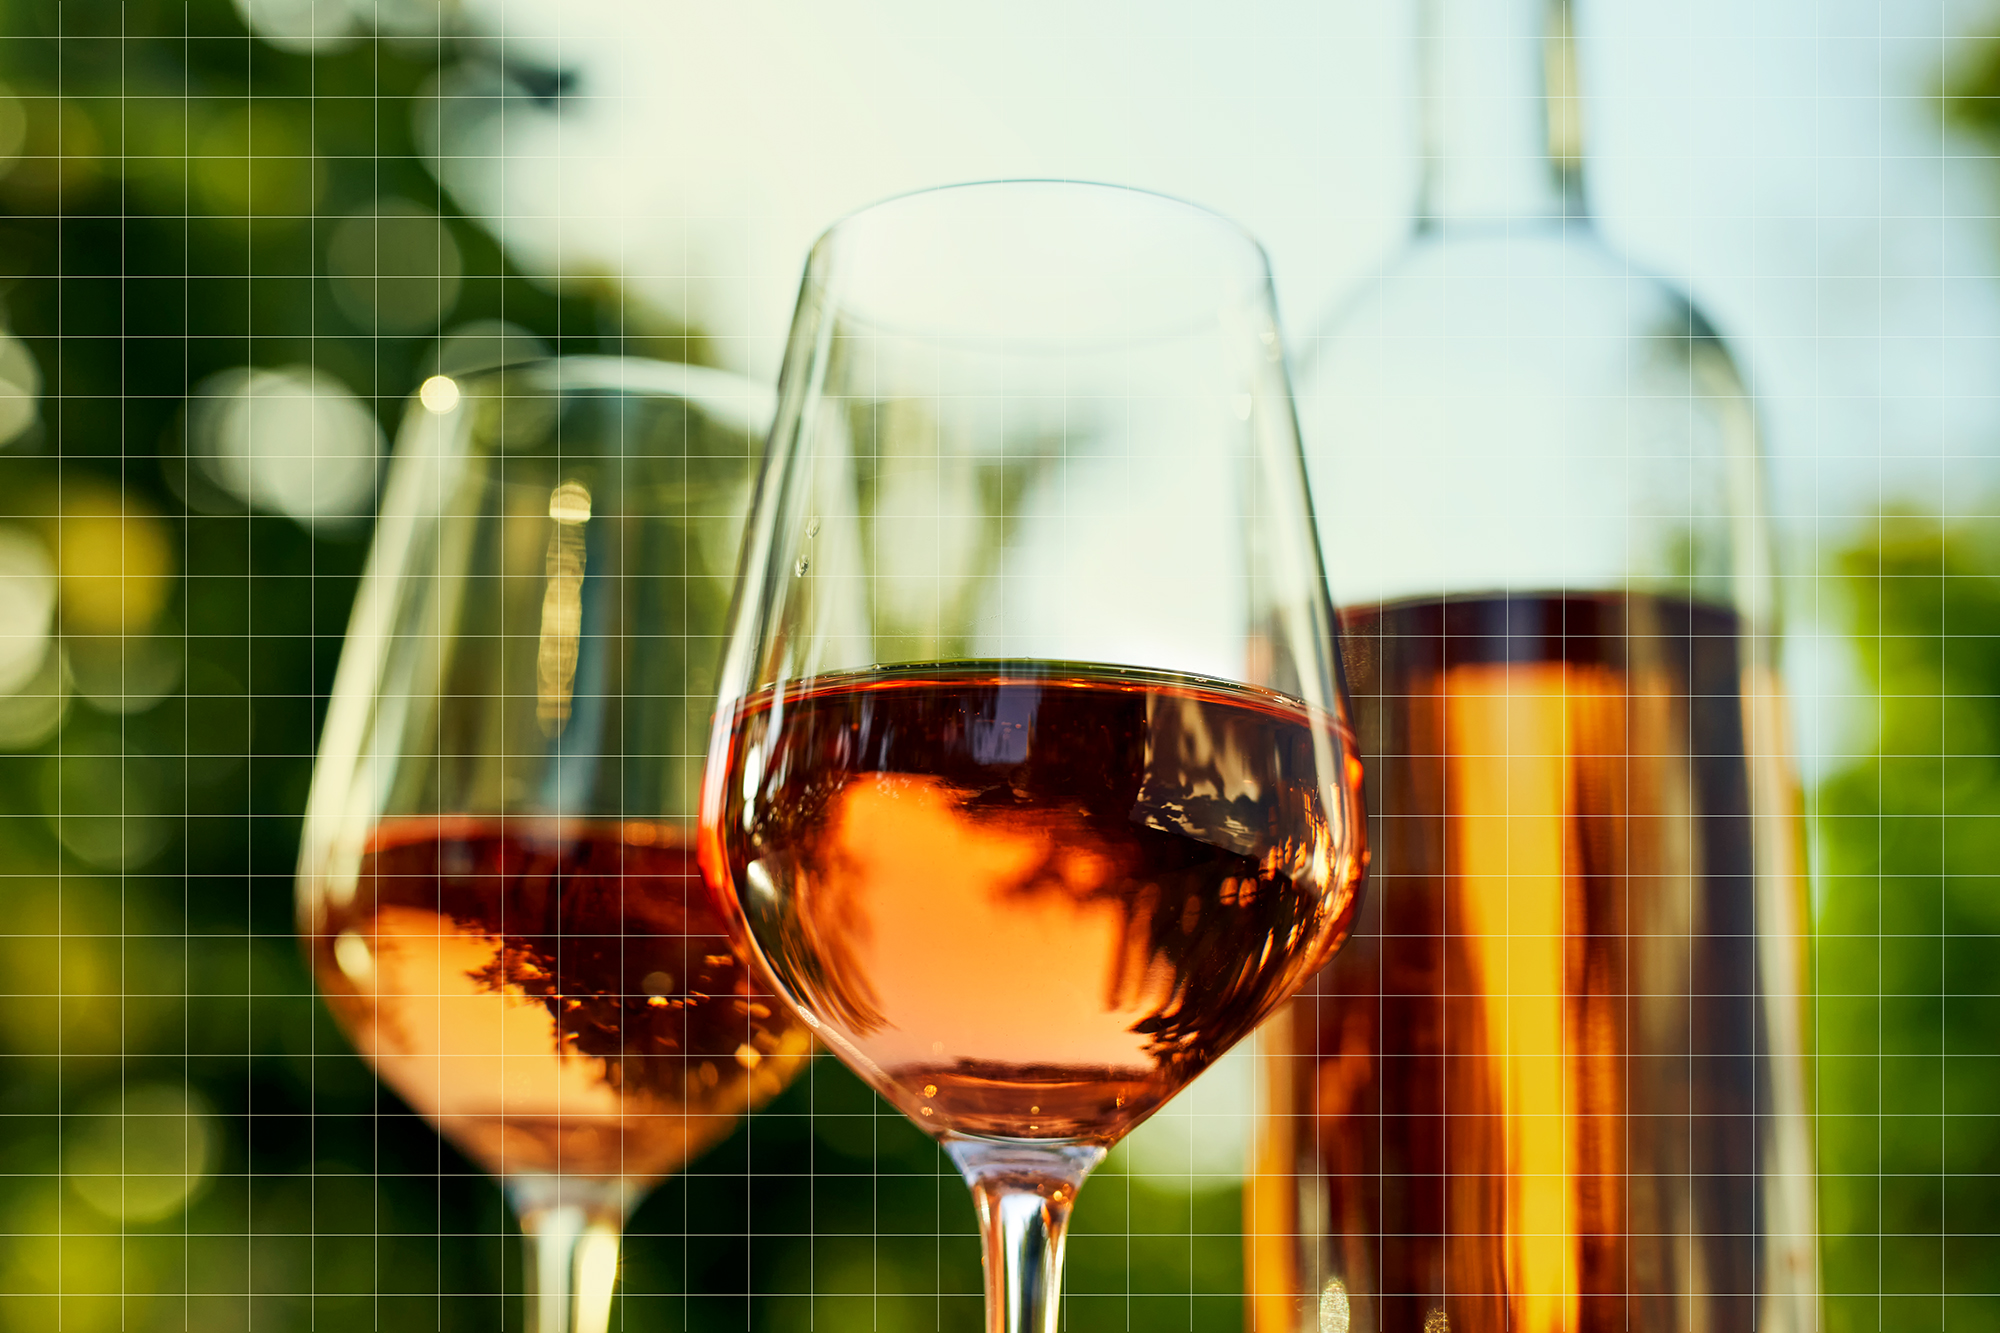 Two glasses of rose wine and a bottle, close-up